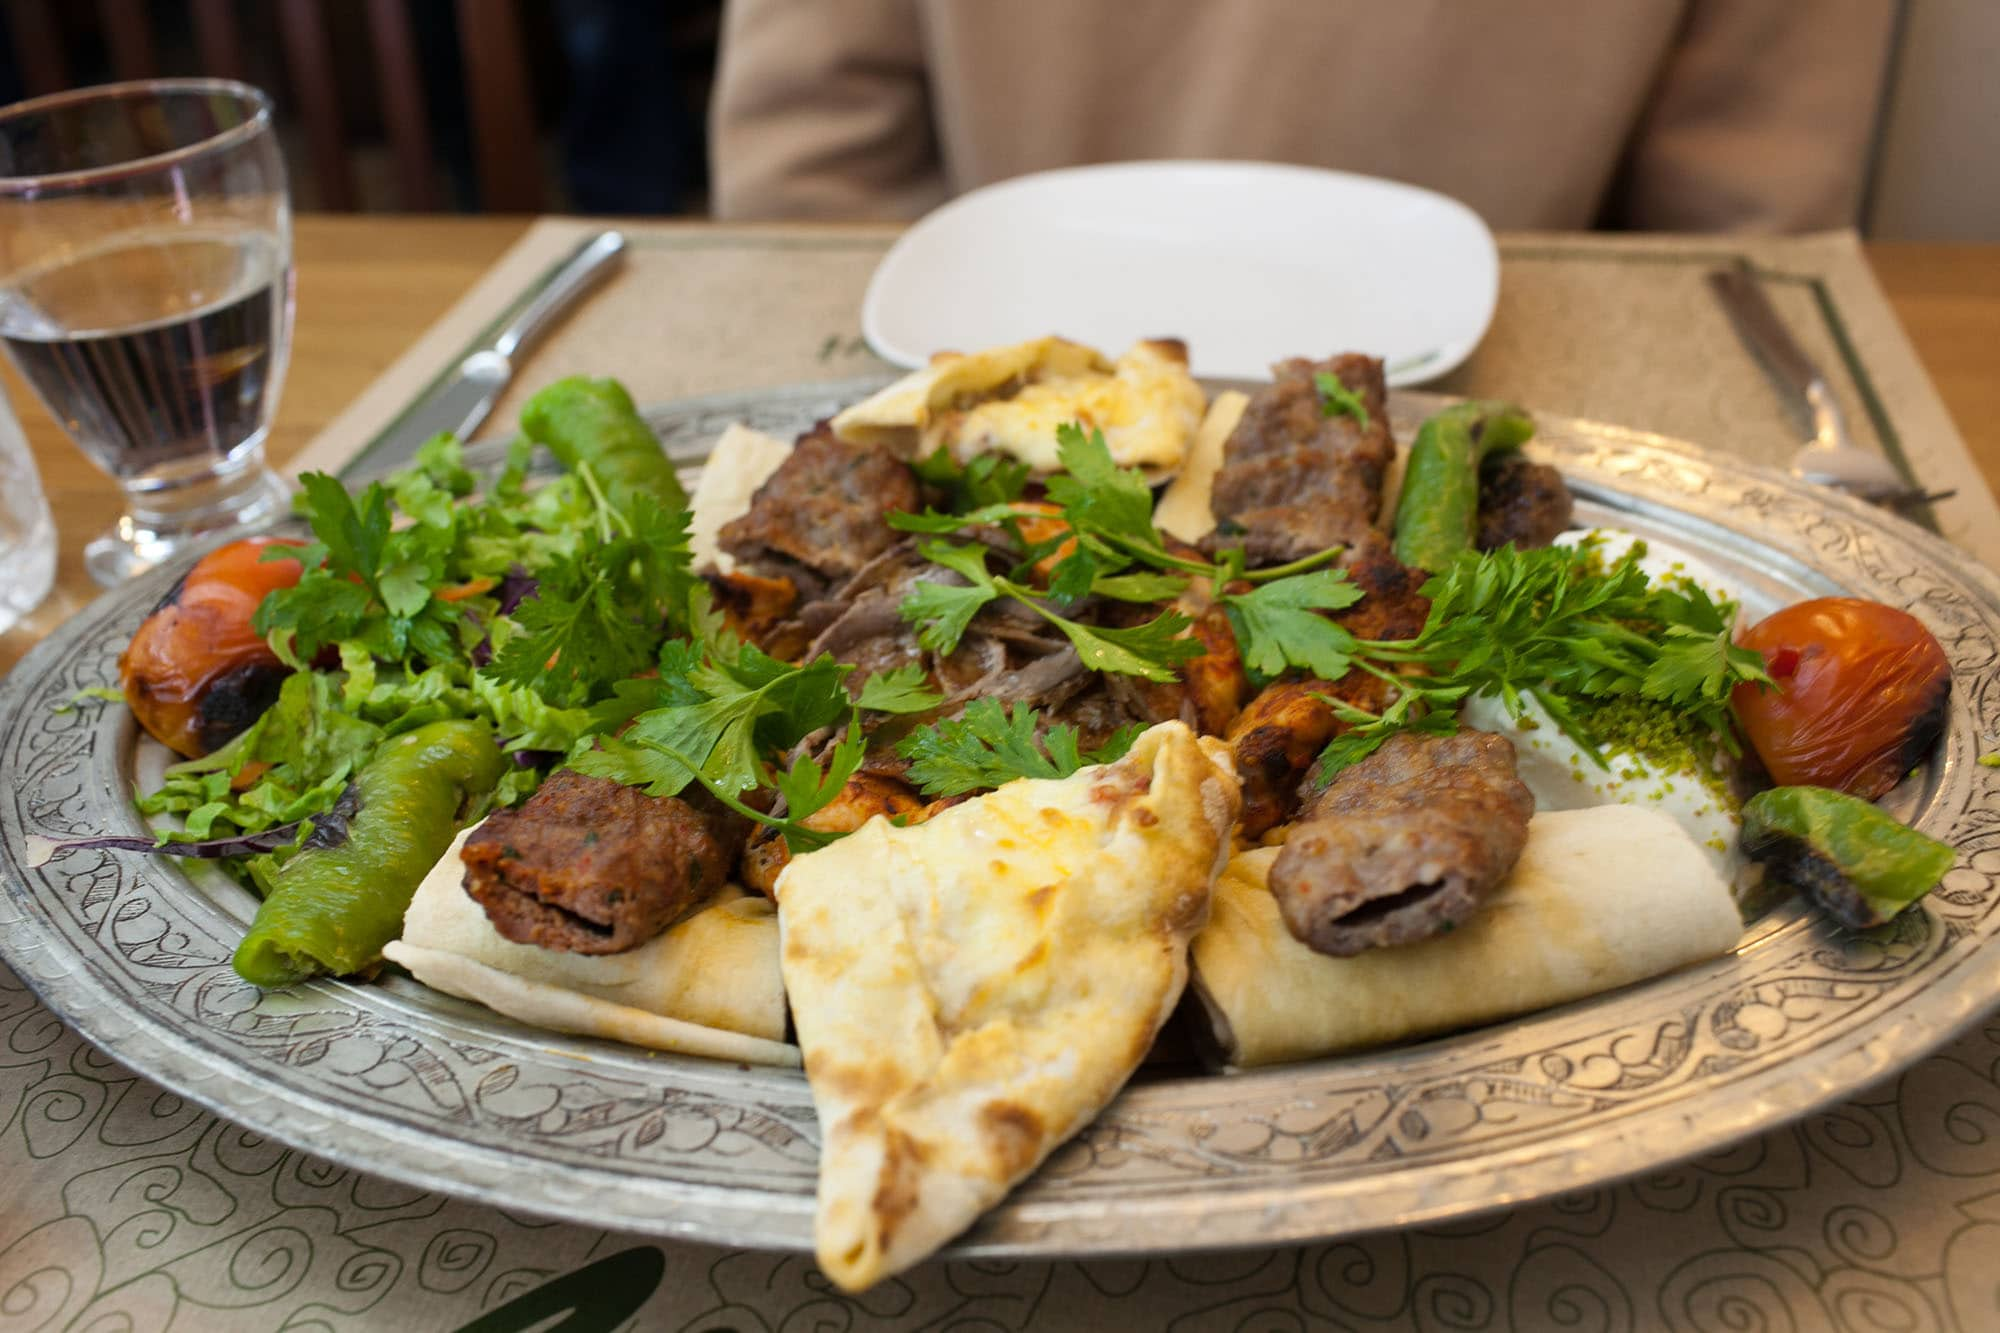 Mixed grill in Istanbul, Turkey.